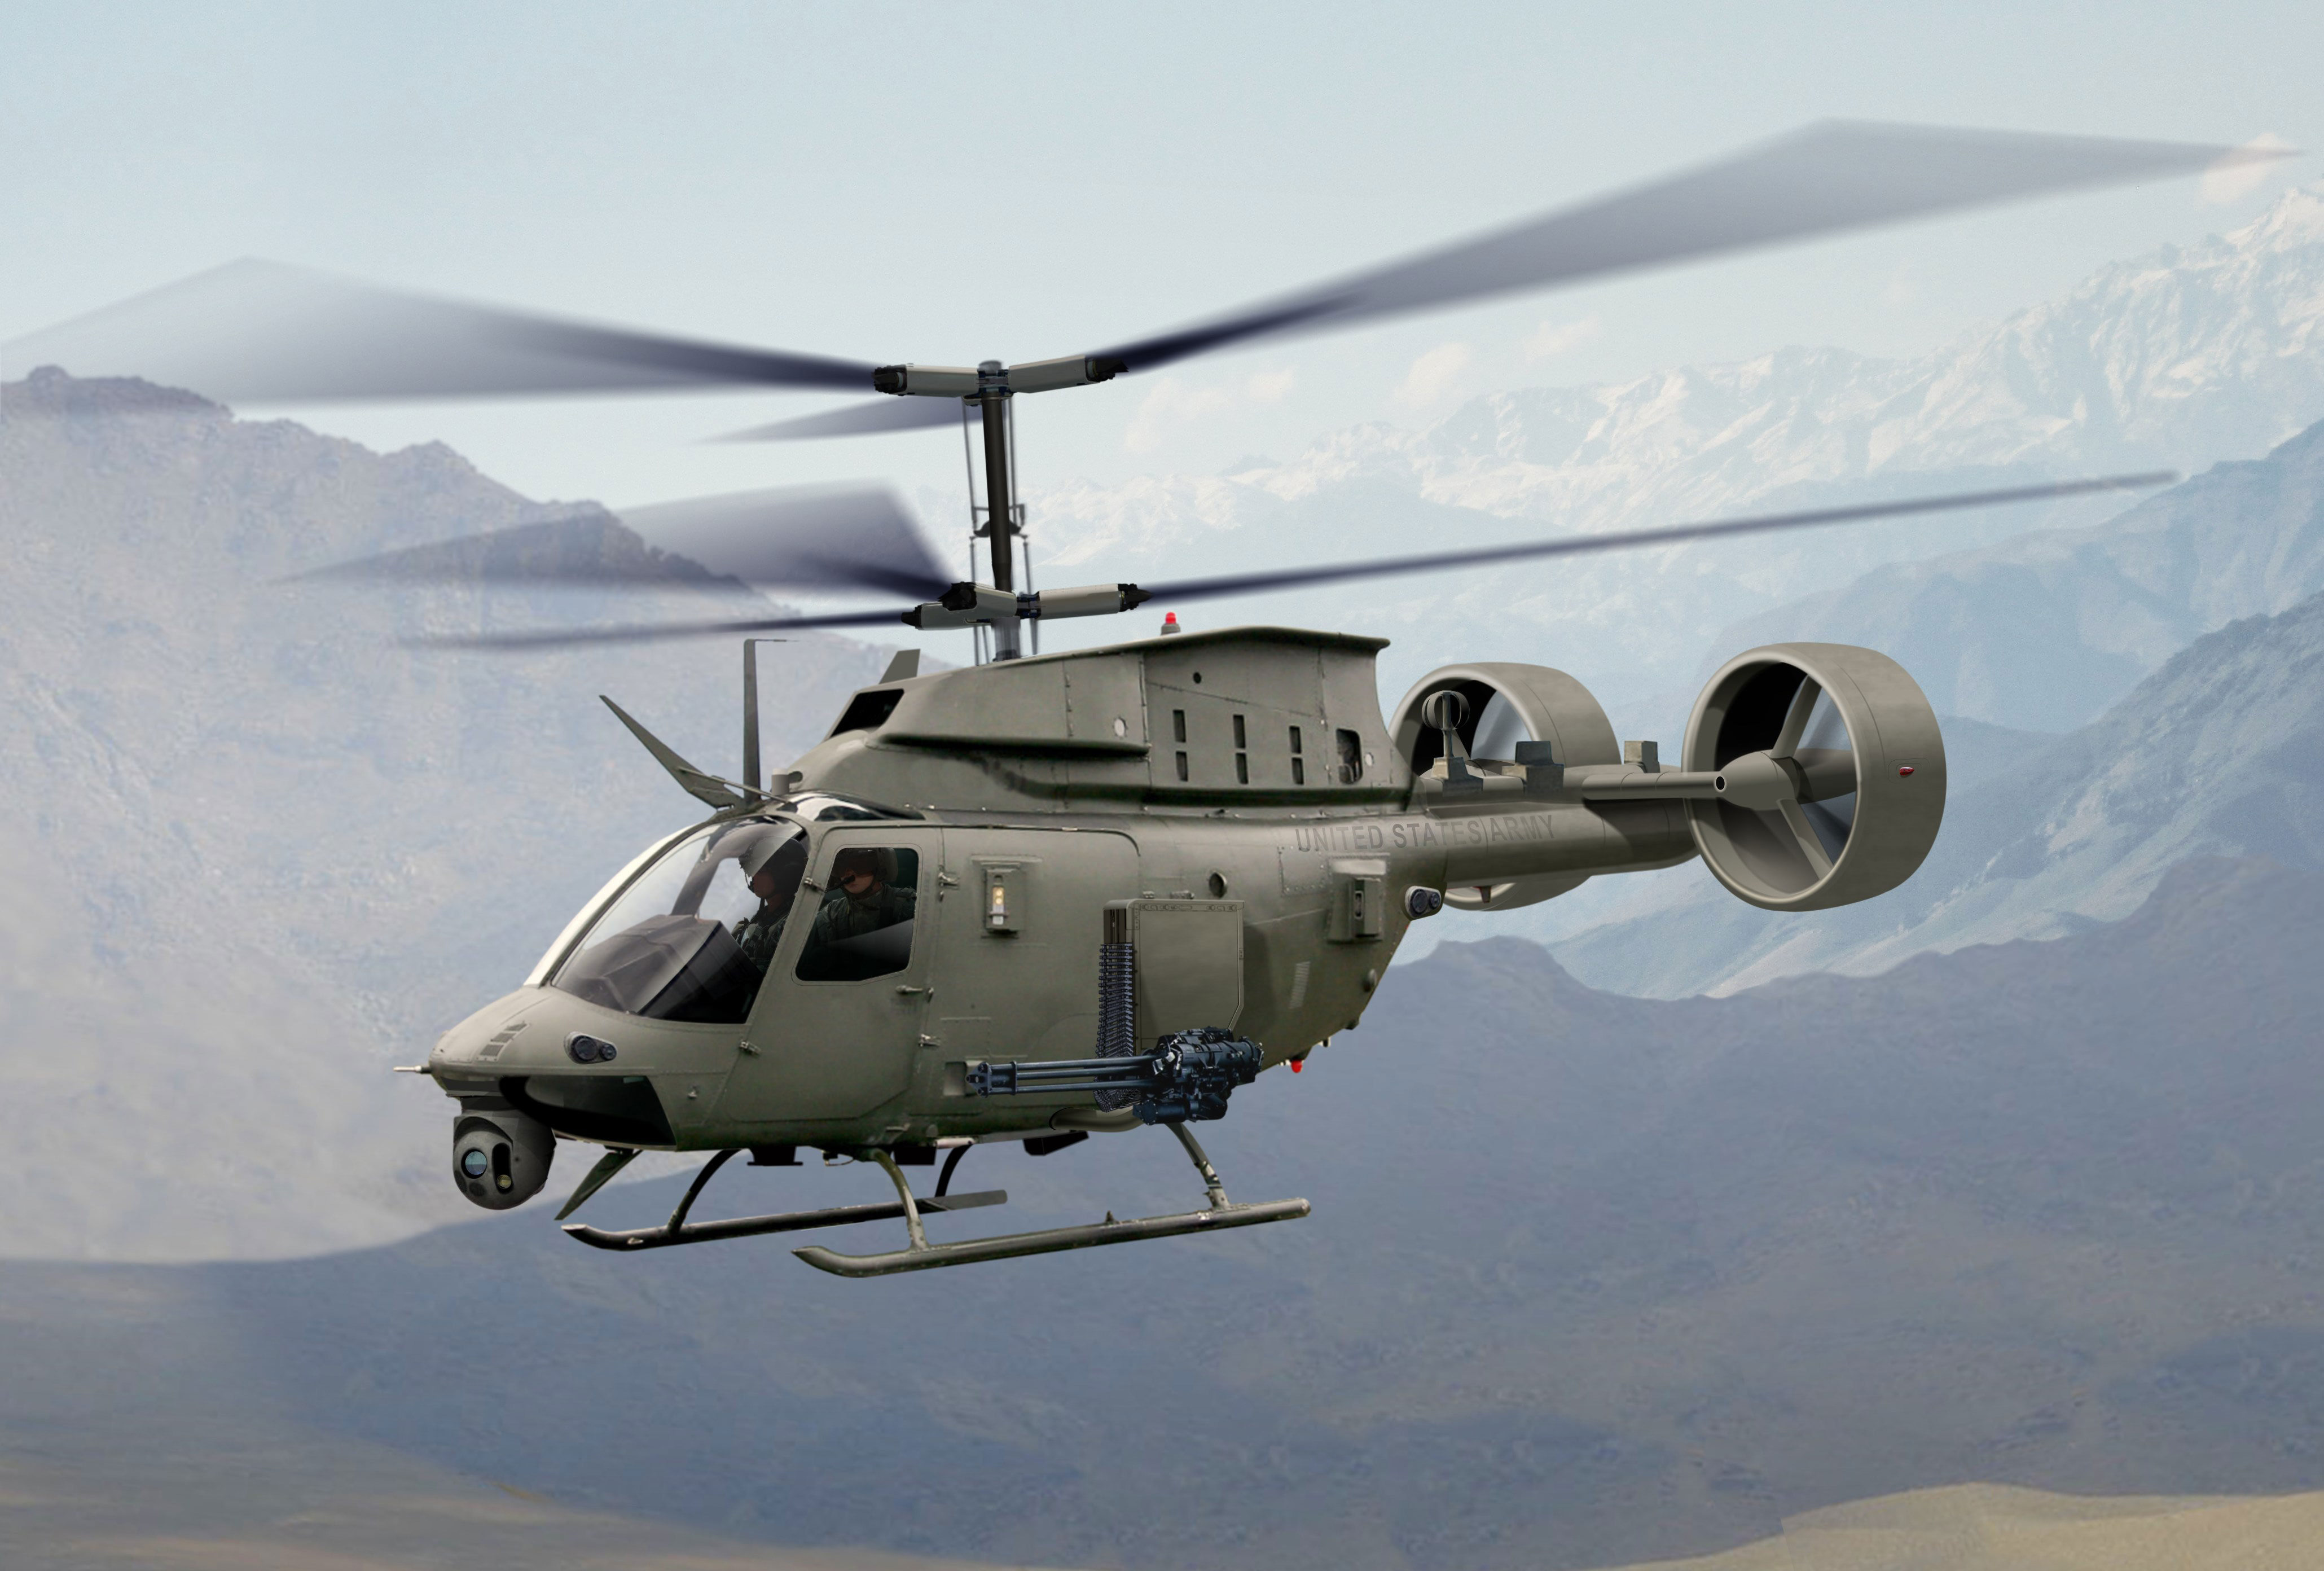 Helicopter 4k Ultra HD Wallpaper And Background Image